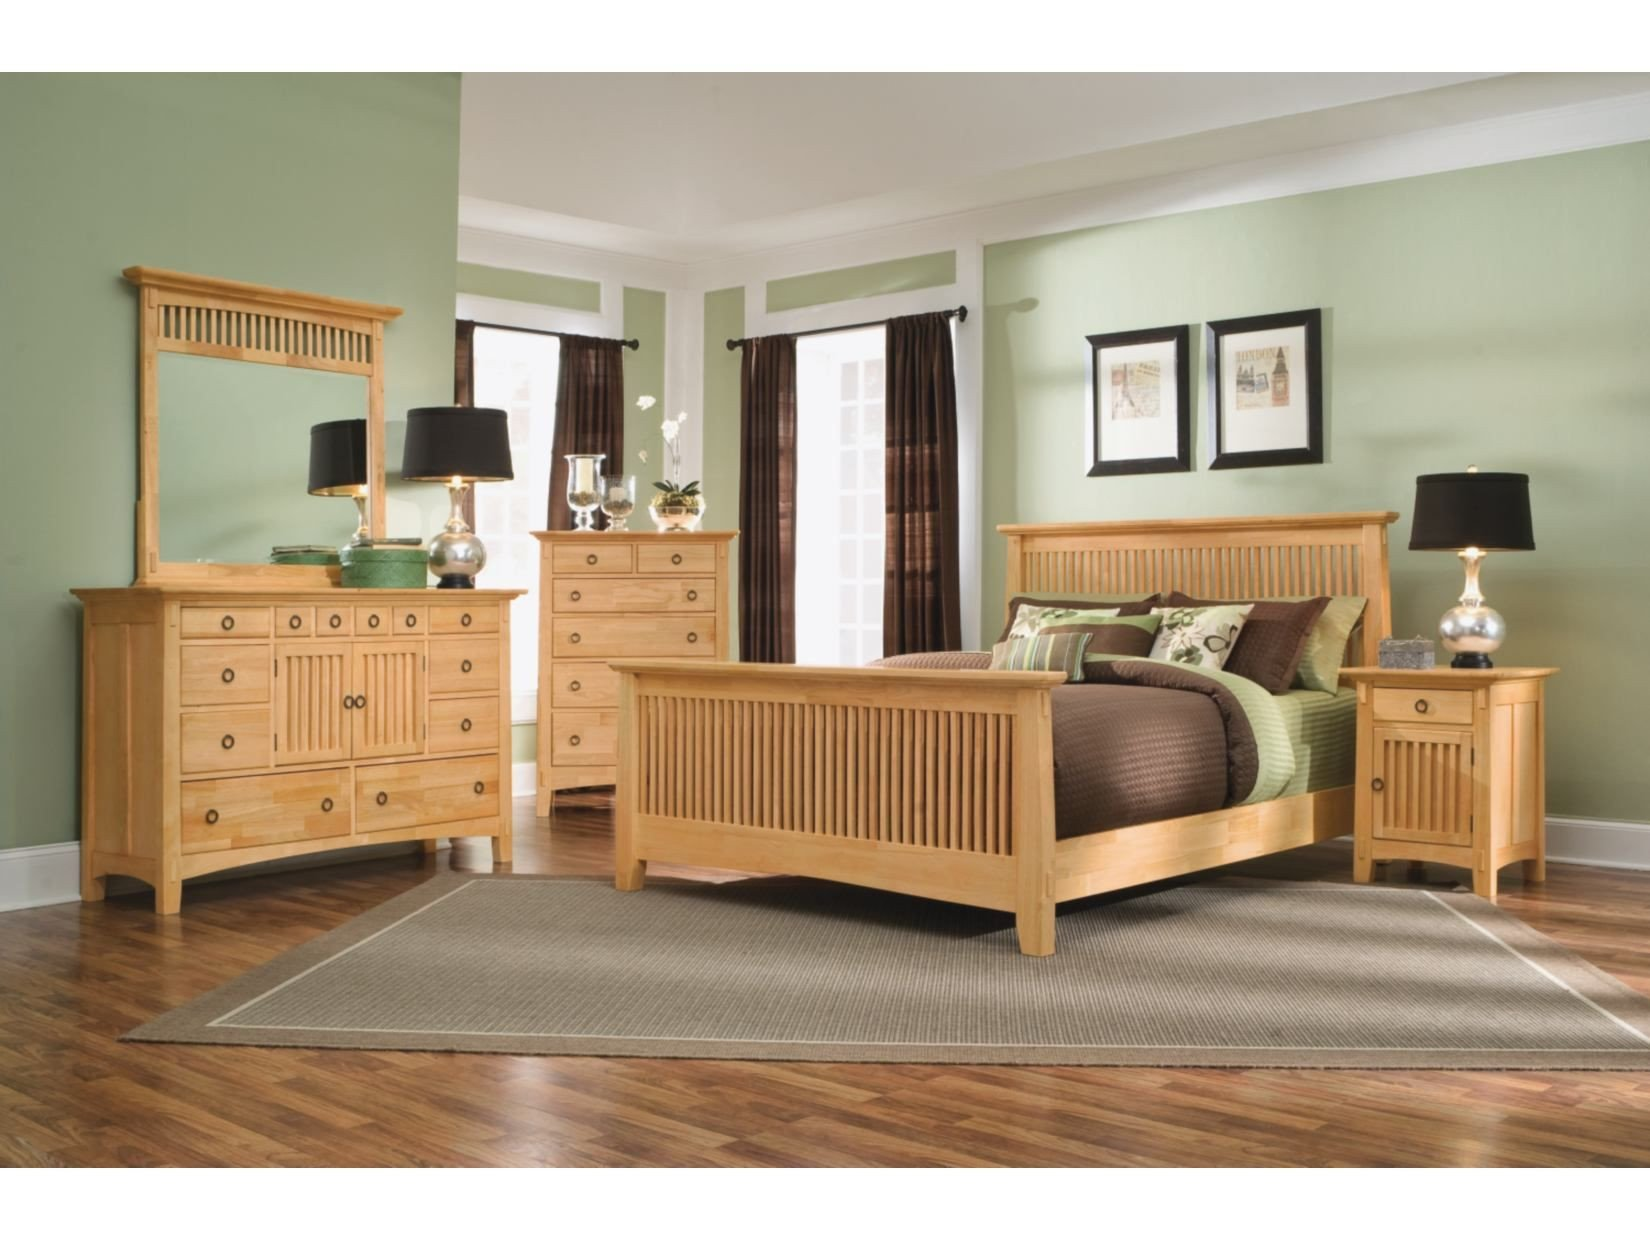 Value City Bedroom Furniture Fresh Arts & Crafts 5 Pc Bedroom Package American Signature